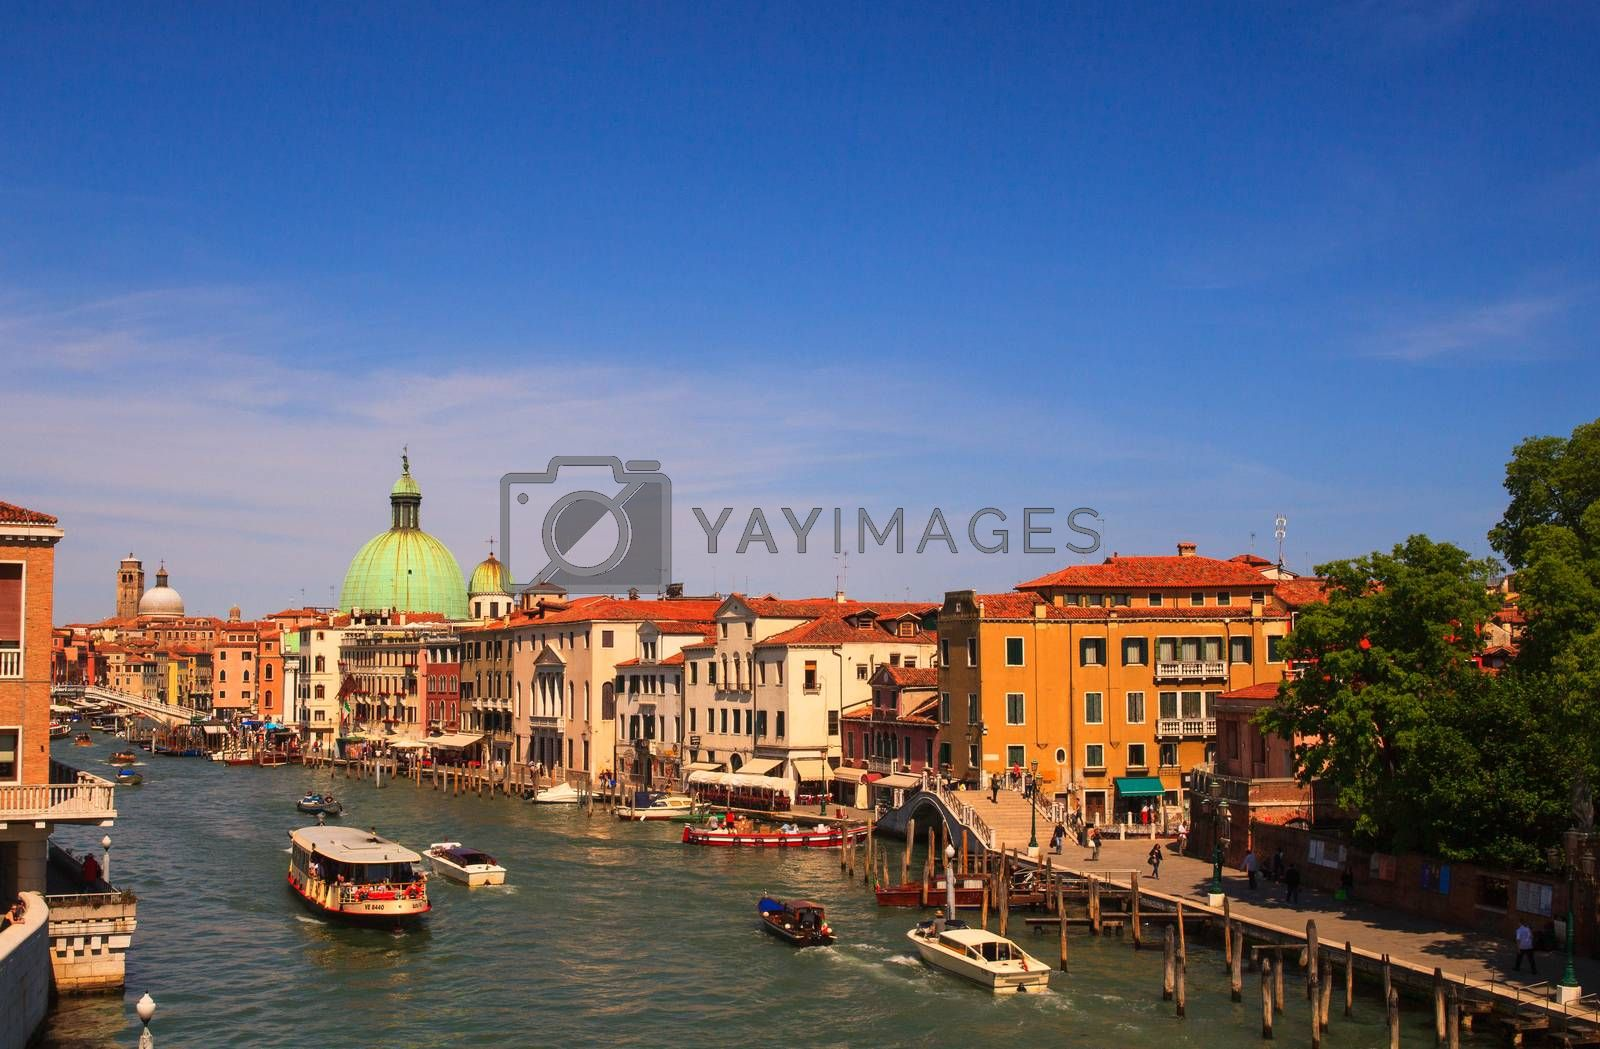 View of San Simeone e Giuda church in Venice